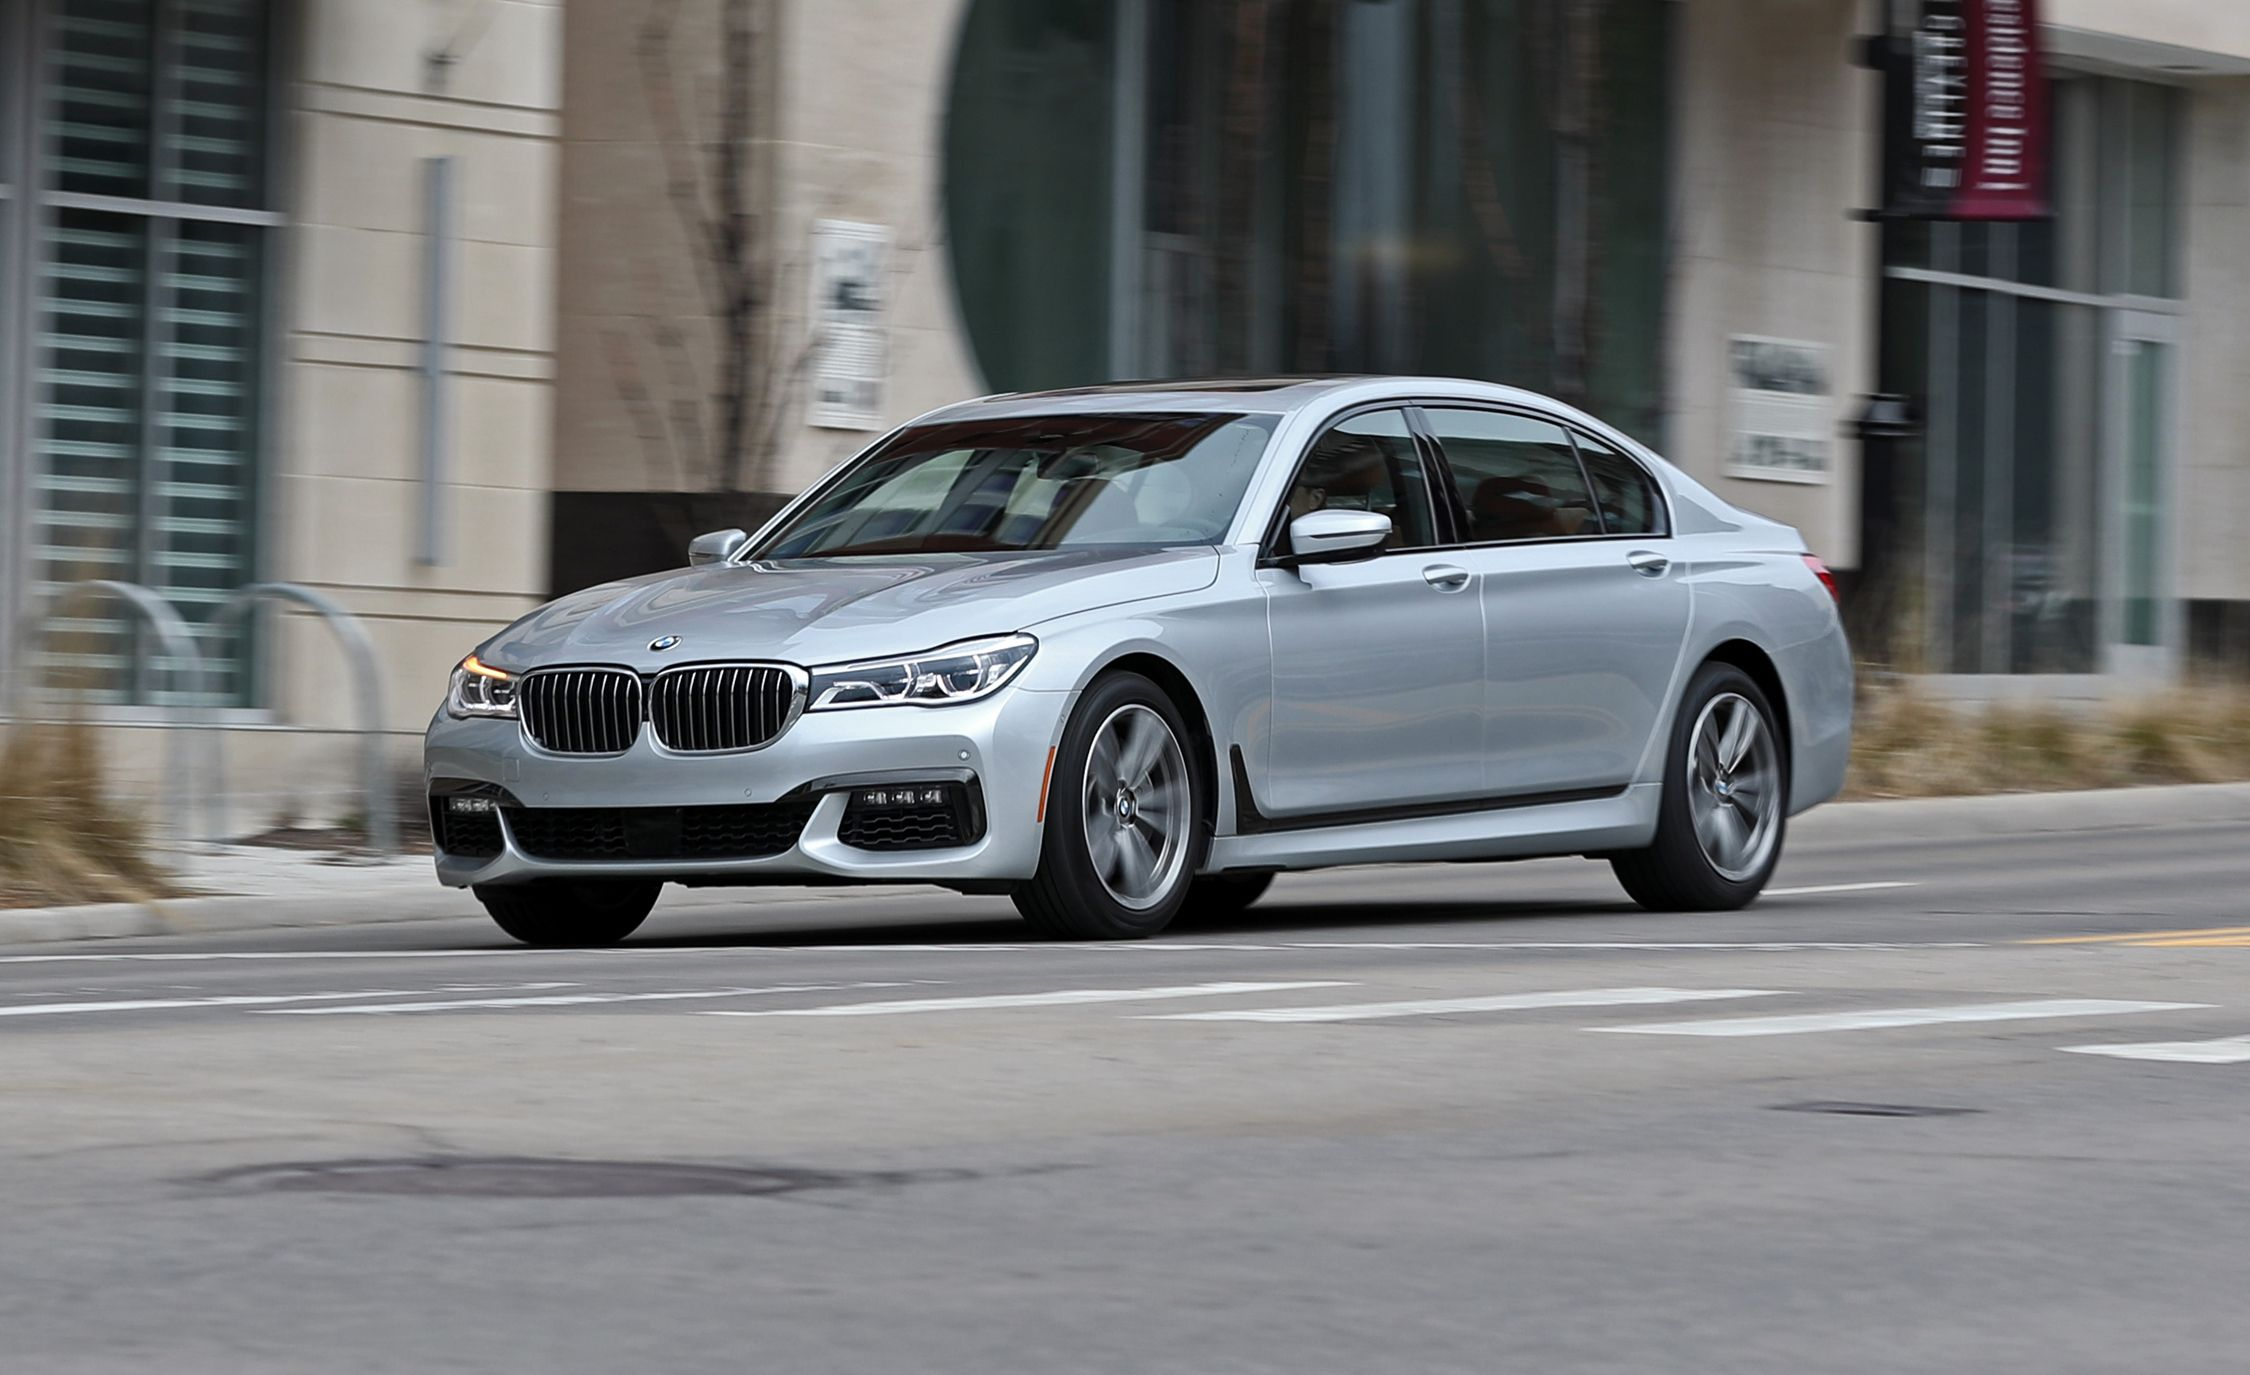 2018 Bmw 750i Rwd Tested Premium Ful Far From Playful Review Car And Driver